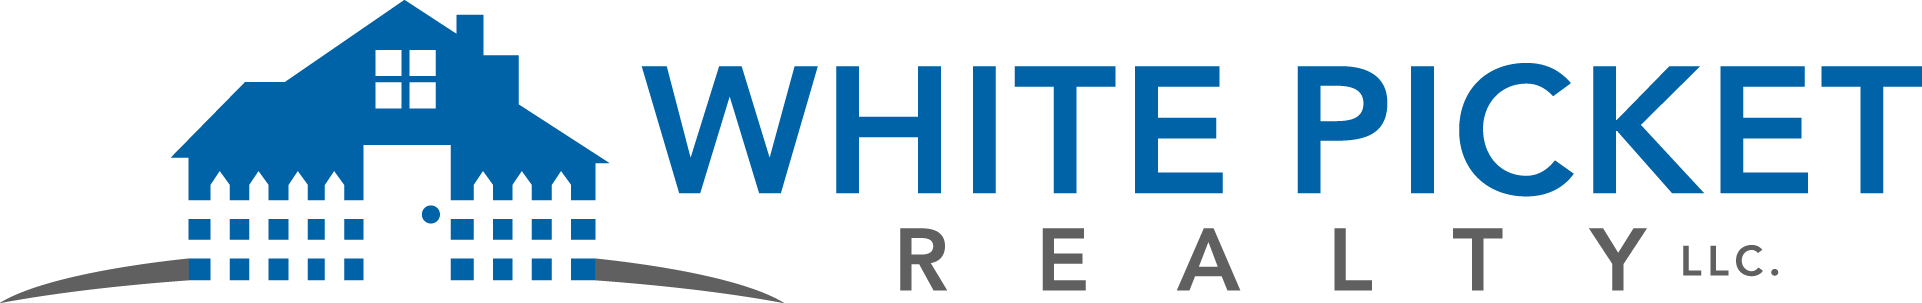 White Picket Realty | Houston Texas Real Estate